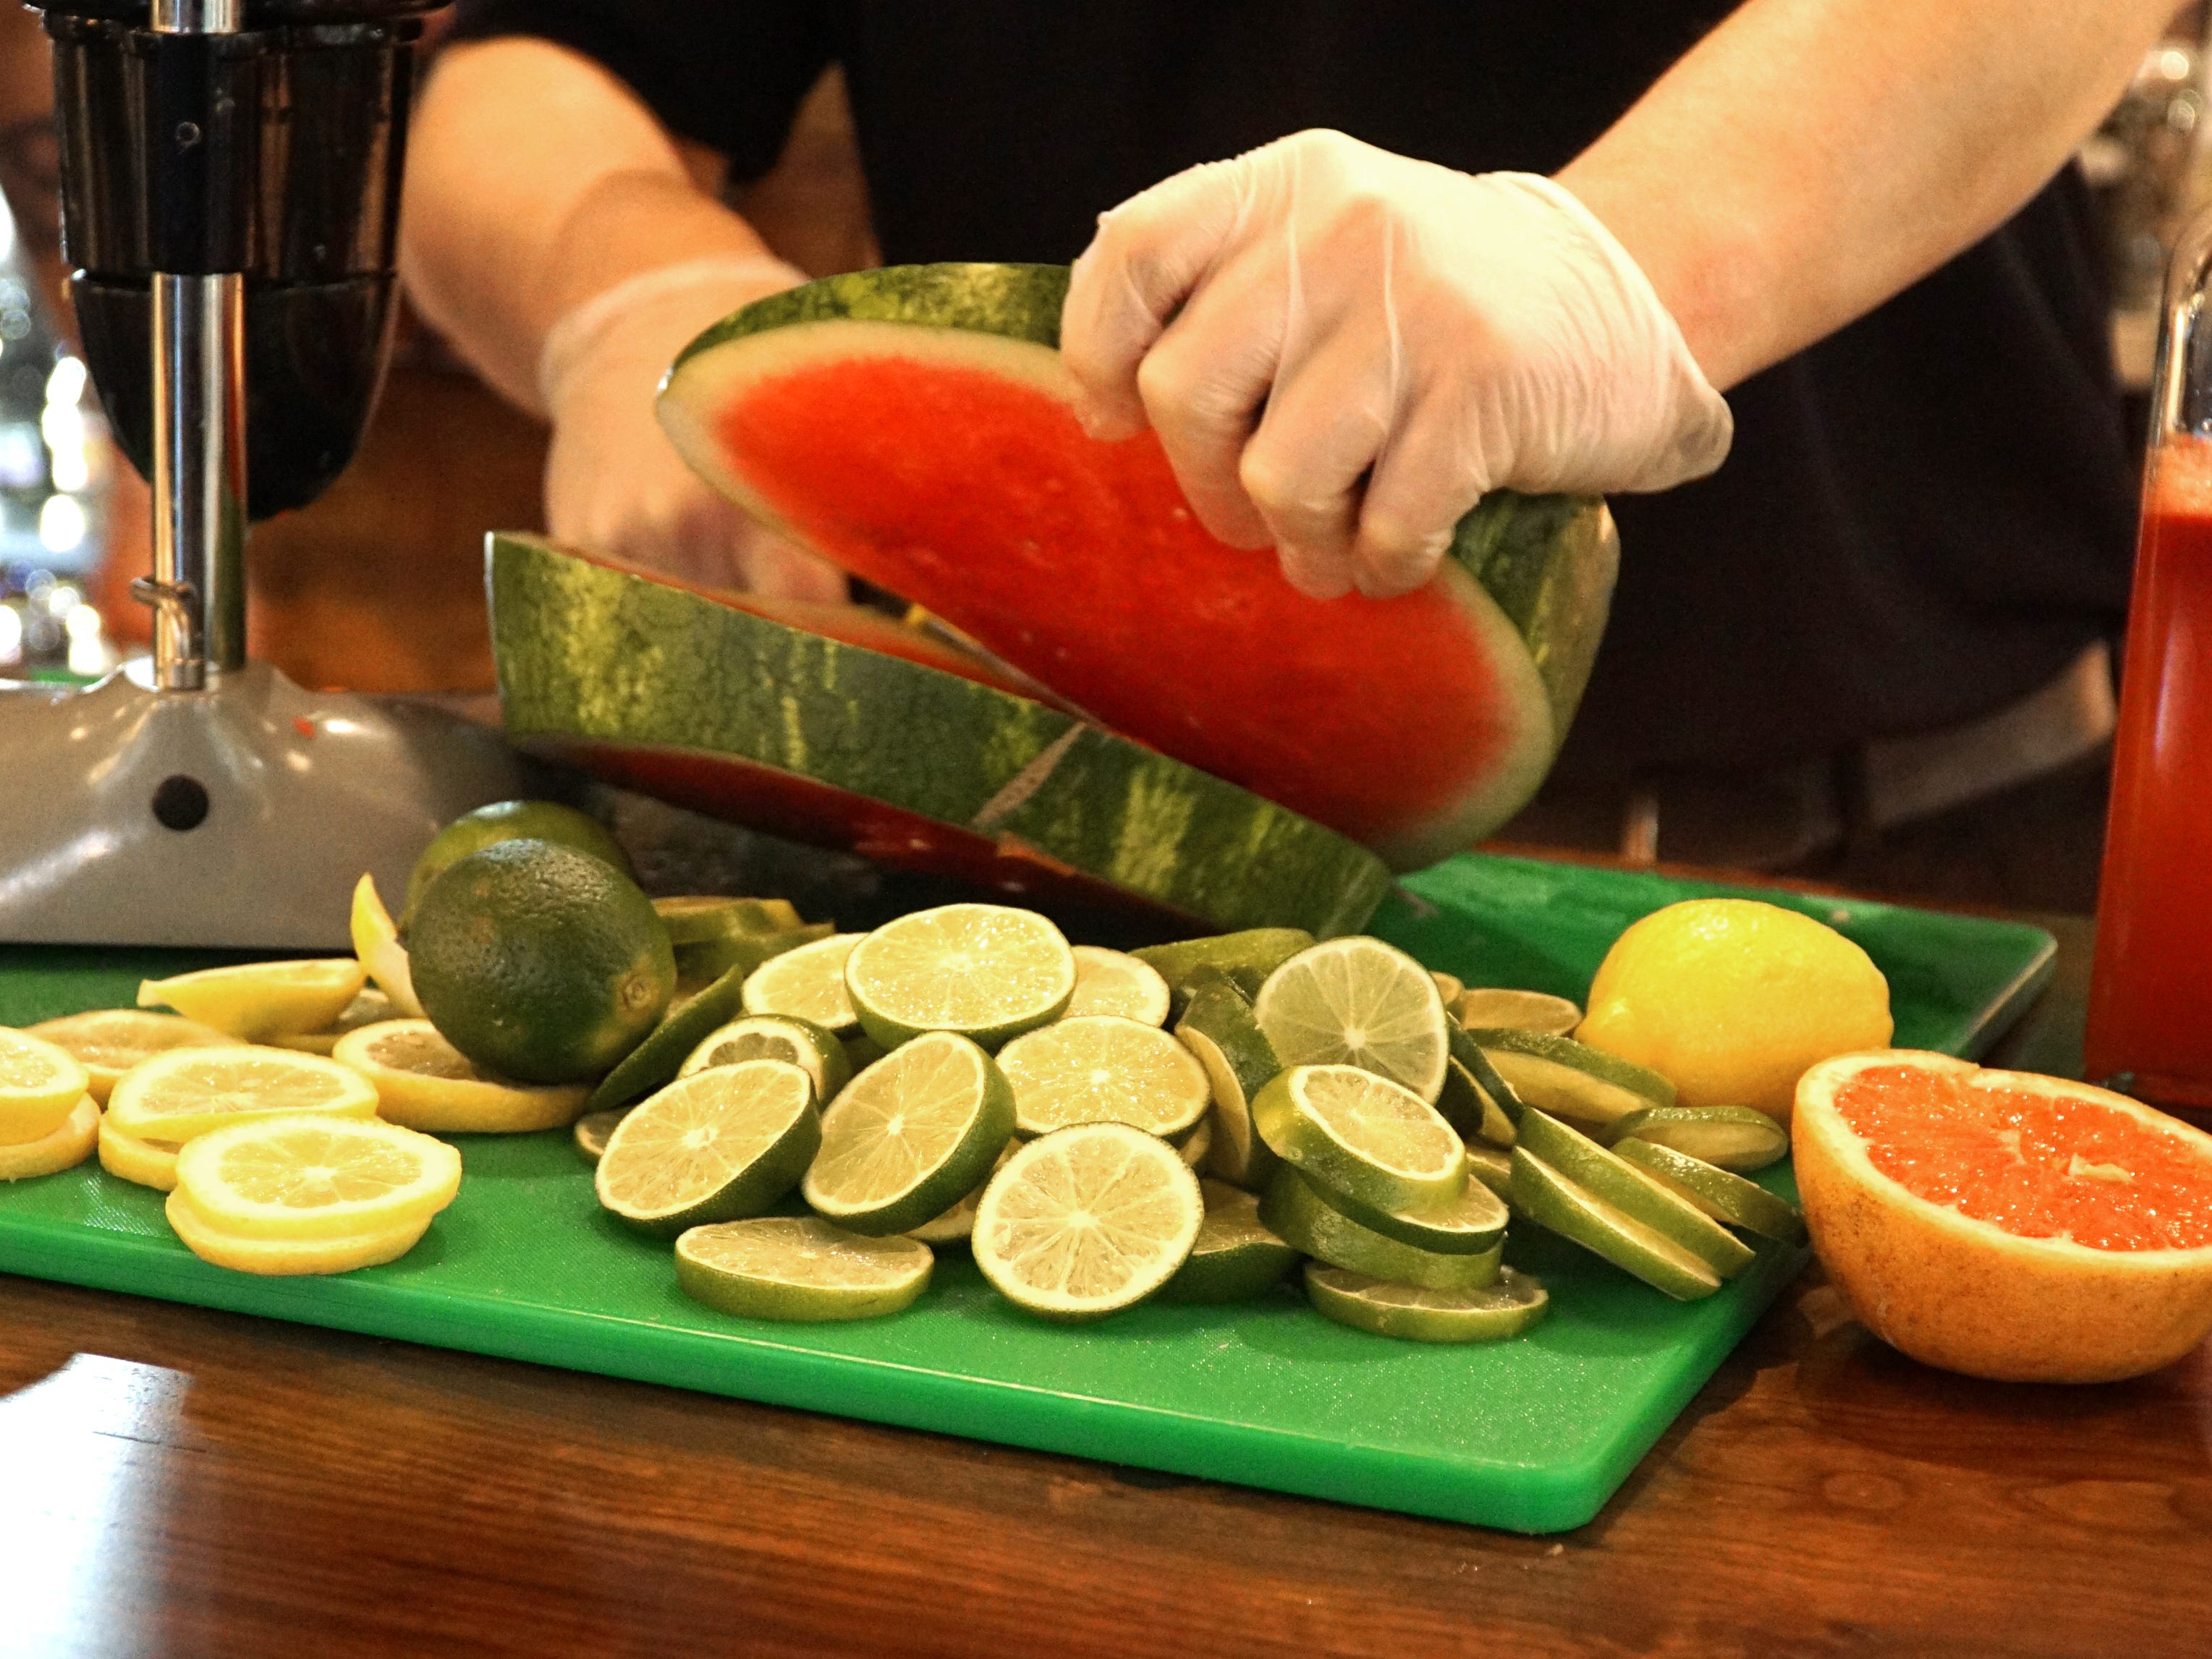 A Sedona Taphouse bartender cuts up fruits for mixed drinks.